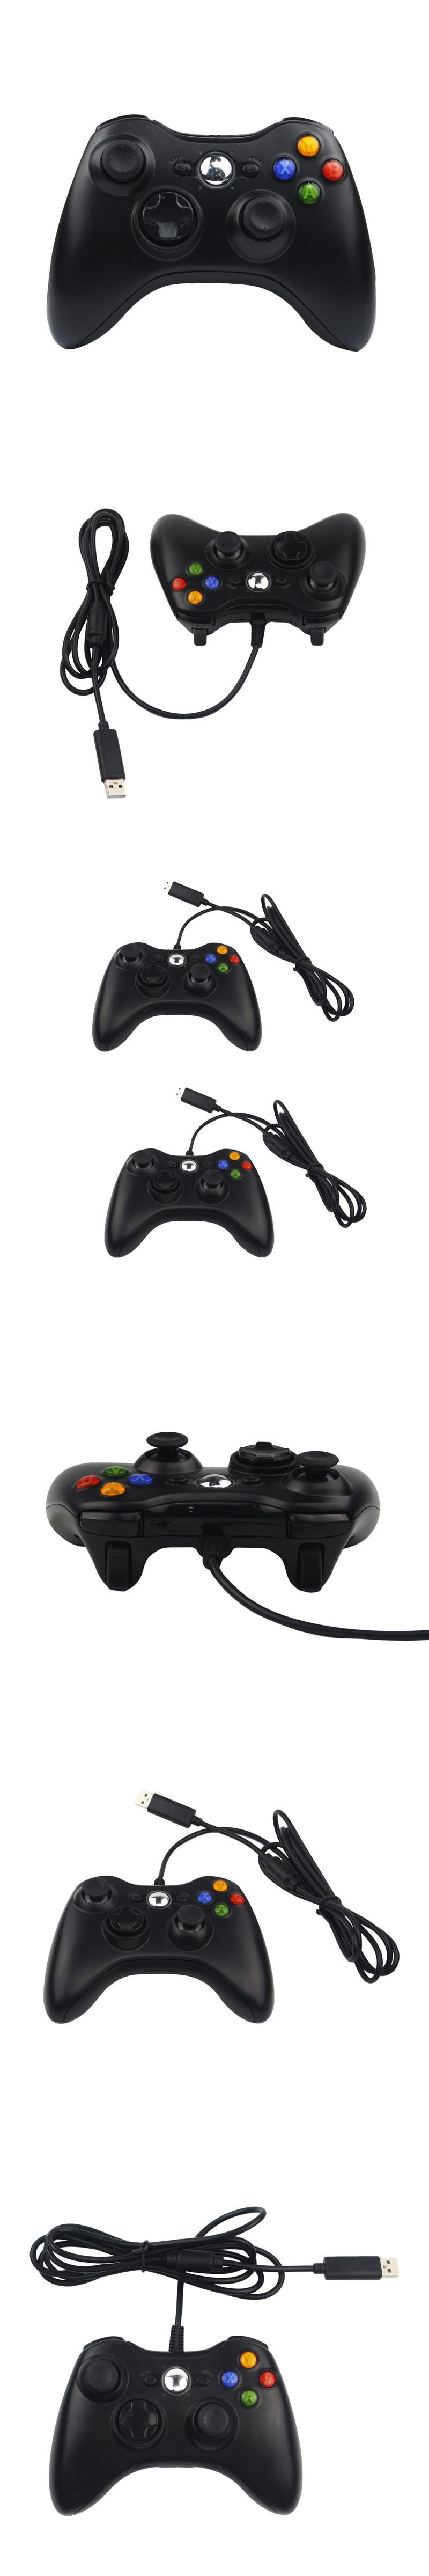 USB Wired Game Controller Shaking Gamepad Joypad Joystick For Xbox ...